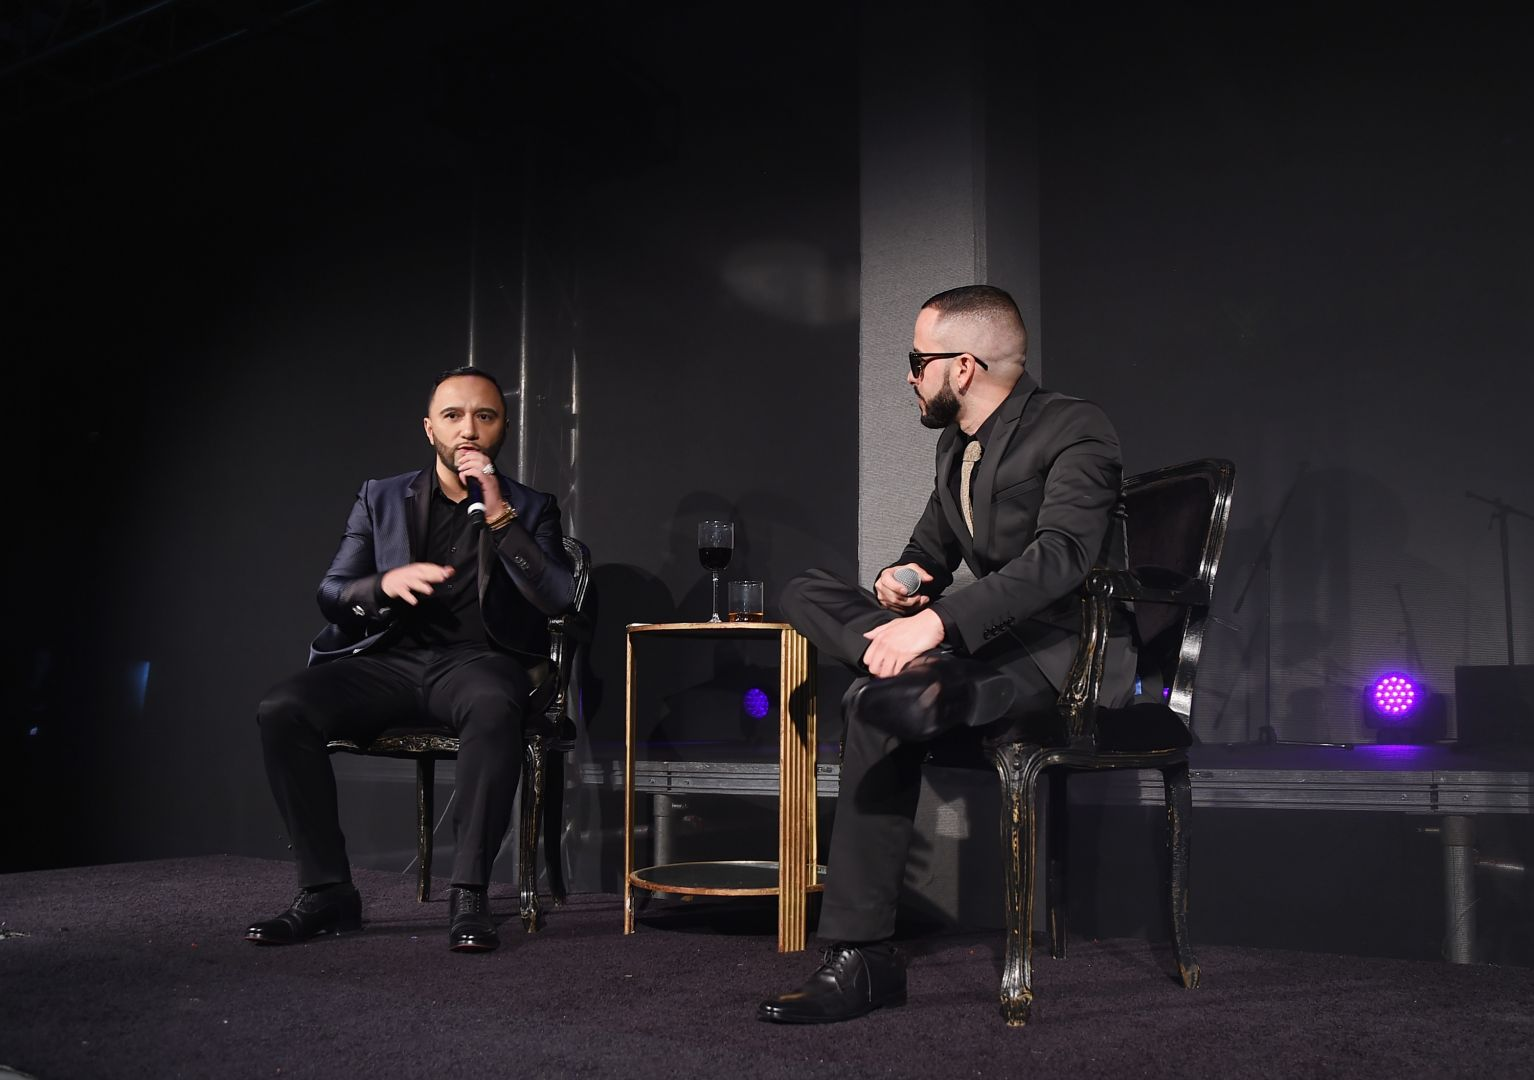 """Alex Sensation (L) and musician Yandel take part in a Q&A during the HBO Latino red carpet premiere of the """"Camino Al Concierto and Legacy: De Lider a Leyenda"""" at Center 548 on April 7, 2015 in New York City. (Photo by Michael Loccisano/Getty Images for HBO)"""